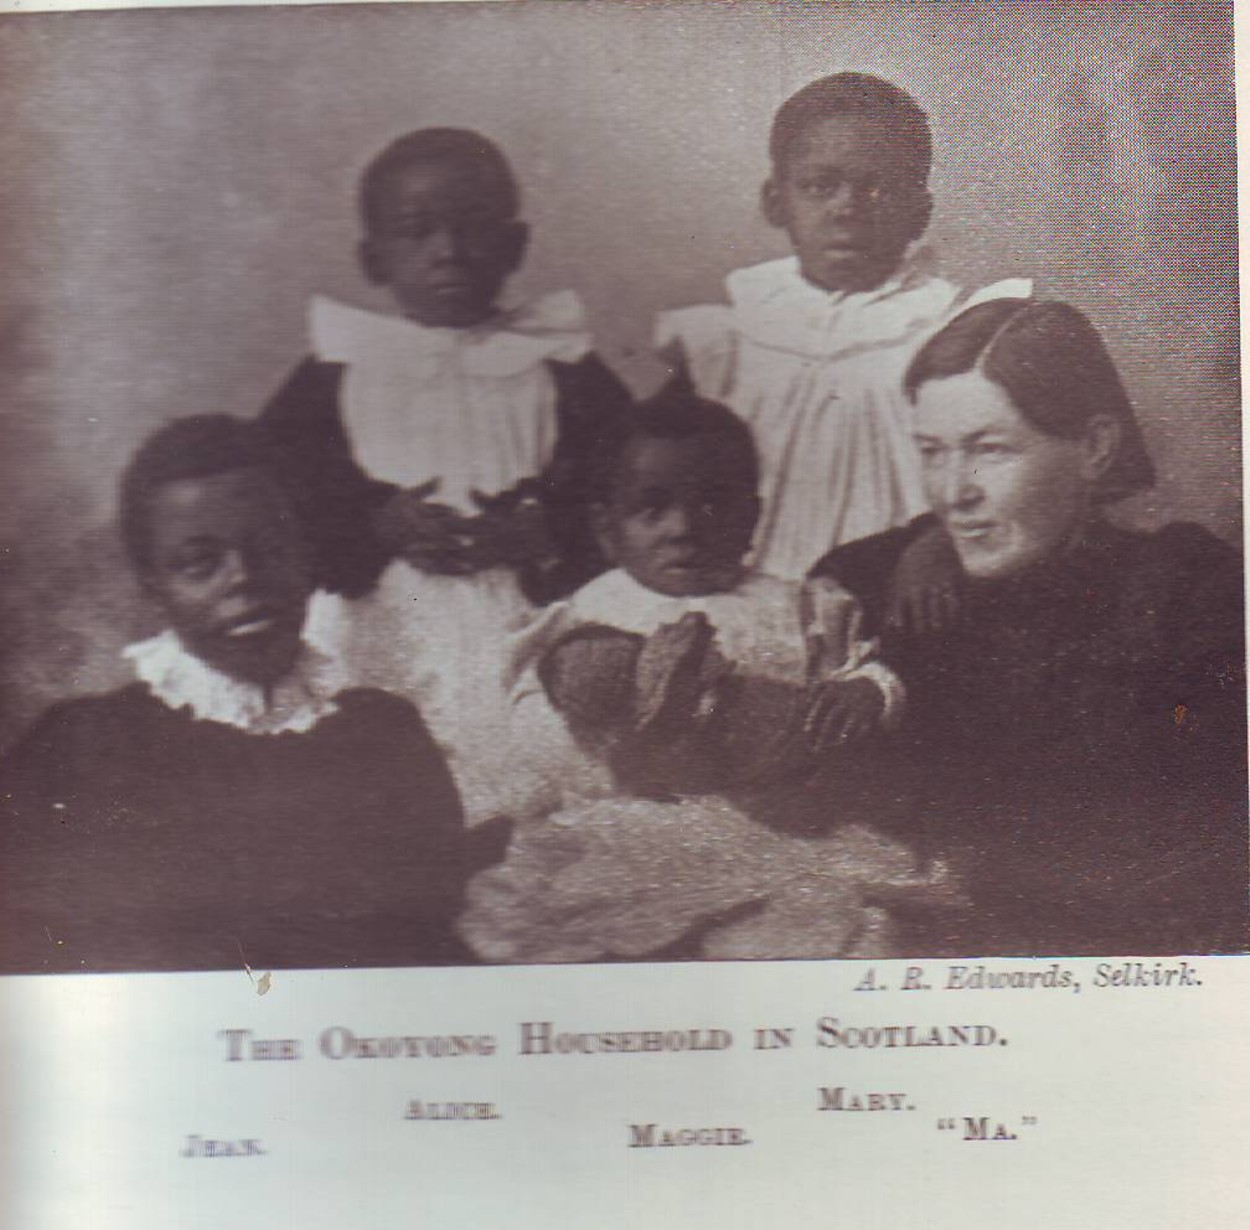 Mary Slessor with the four kids she adopted in Scotland.1881